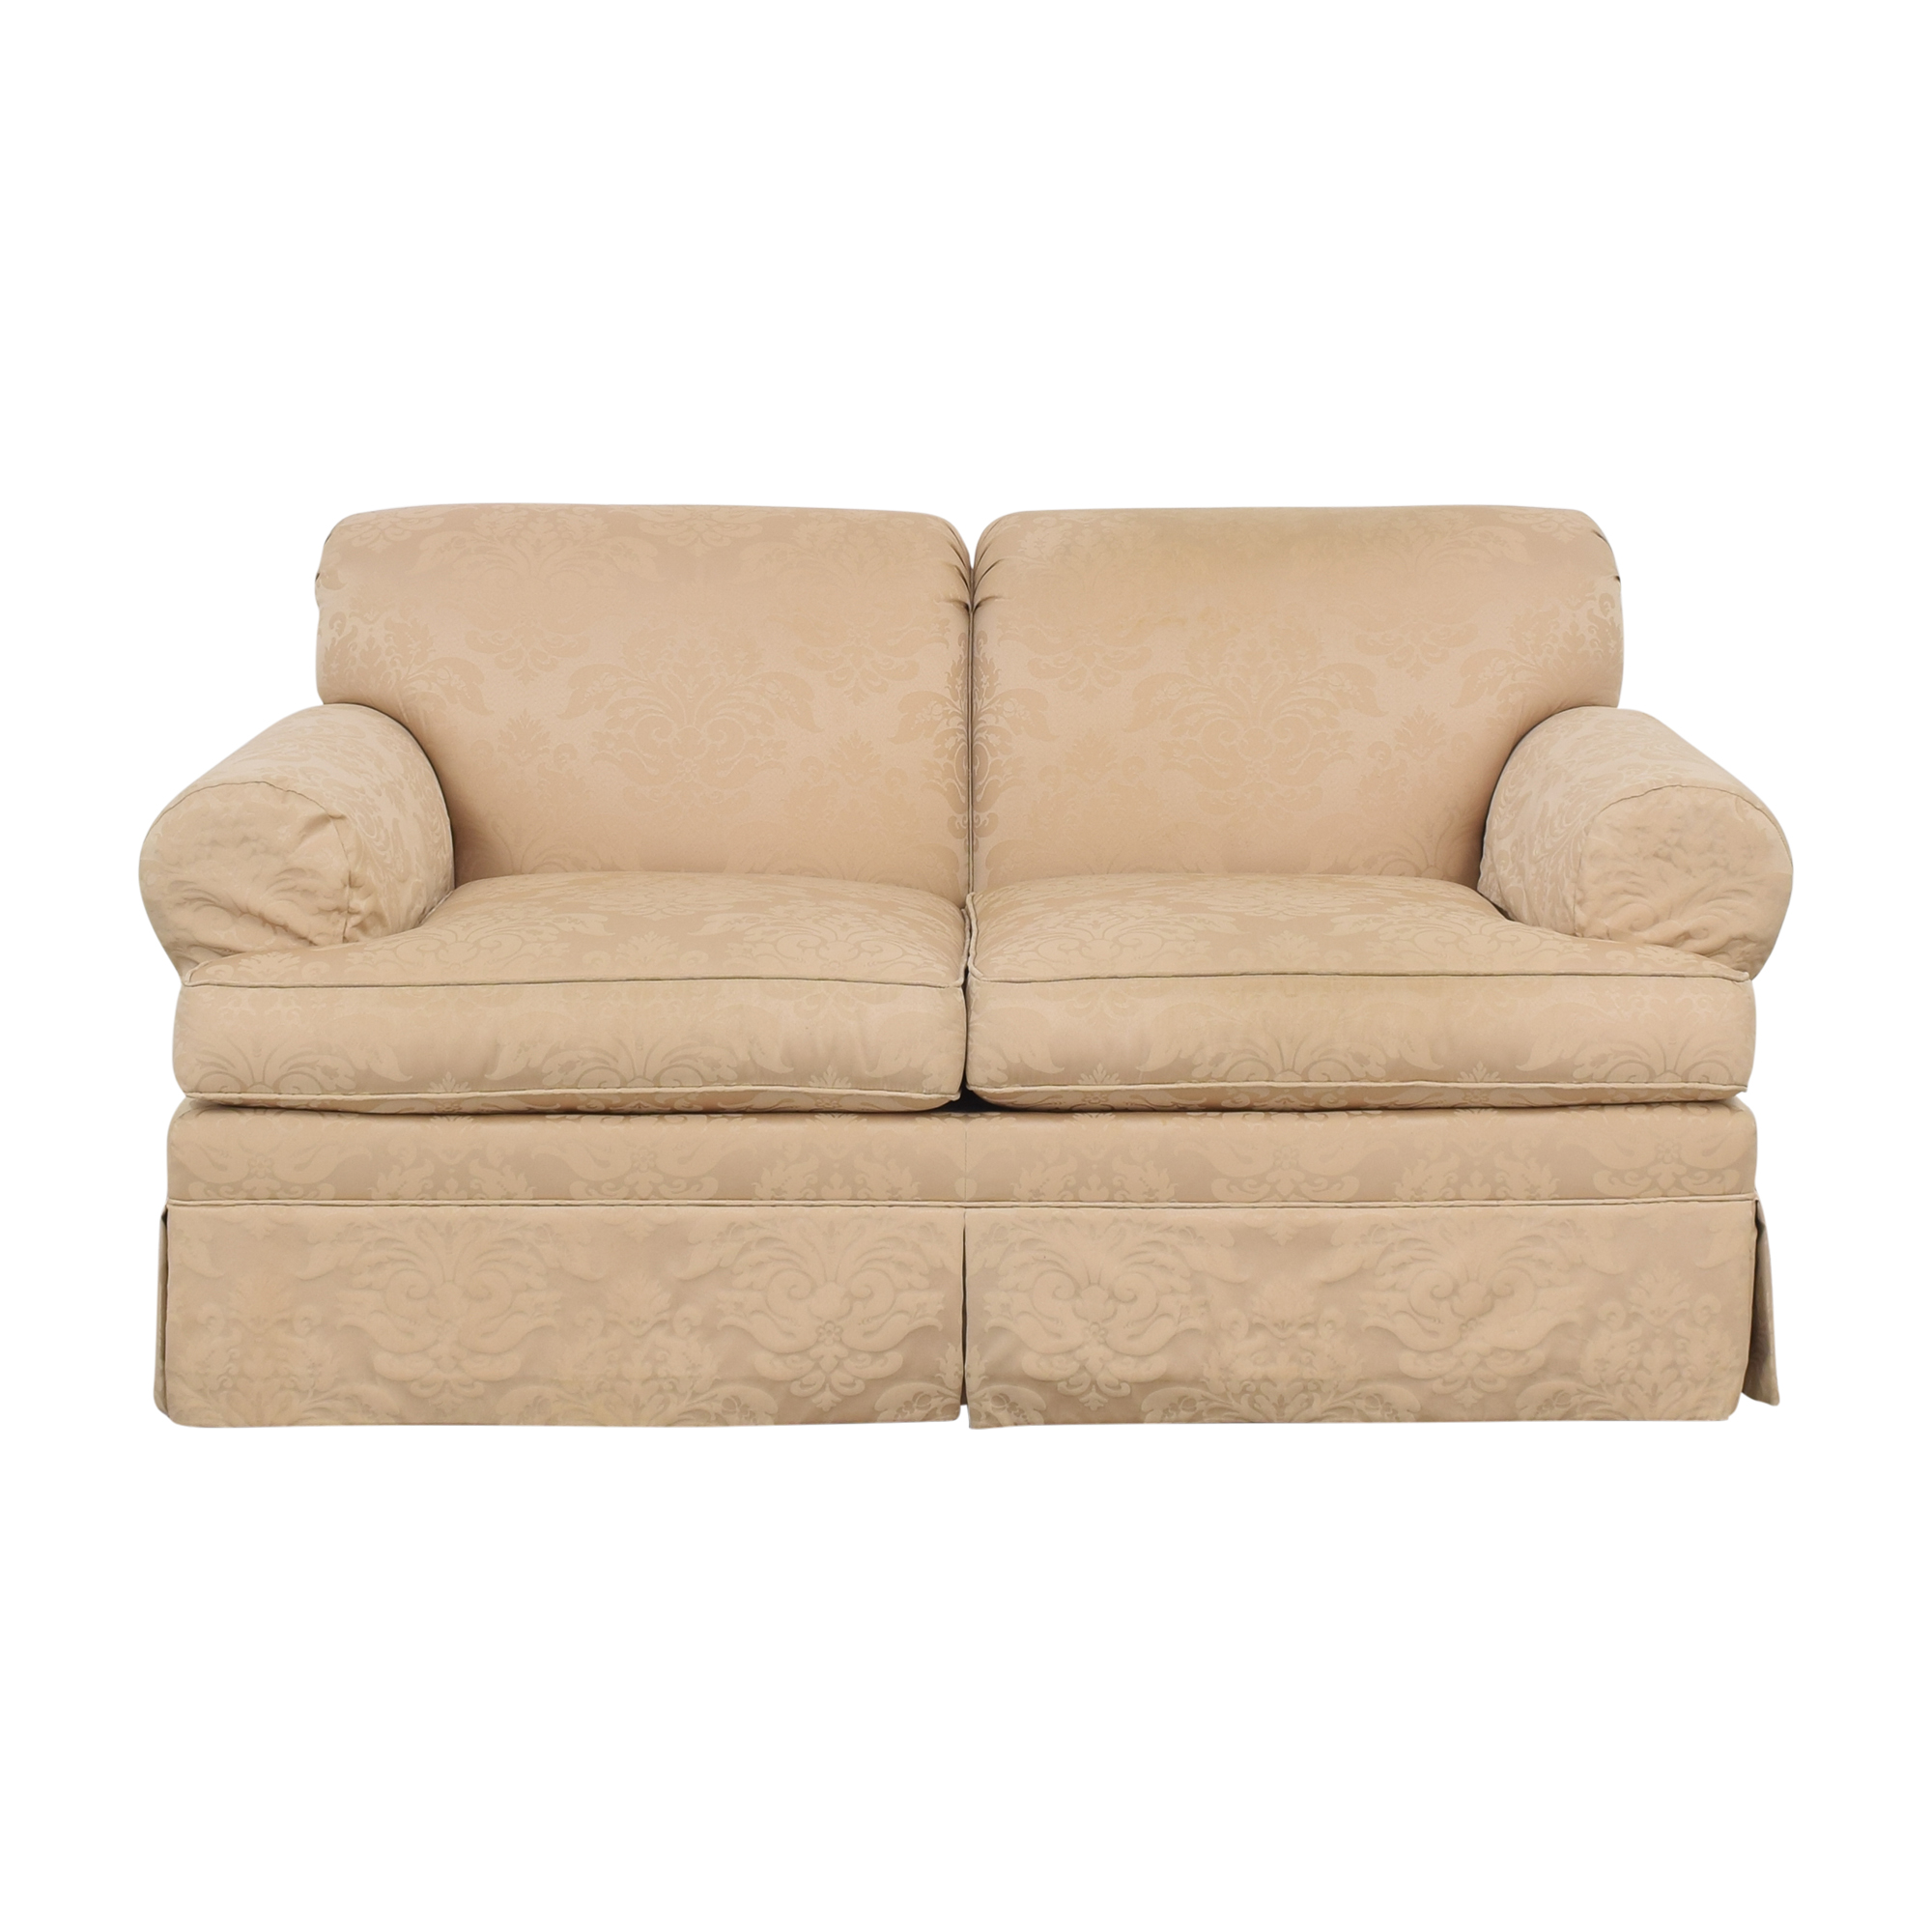 Ethan Allen Ethan Allen Roll Arm Loveseat nj